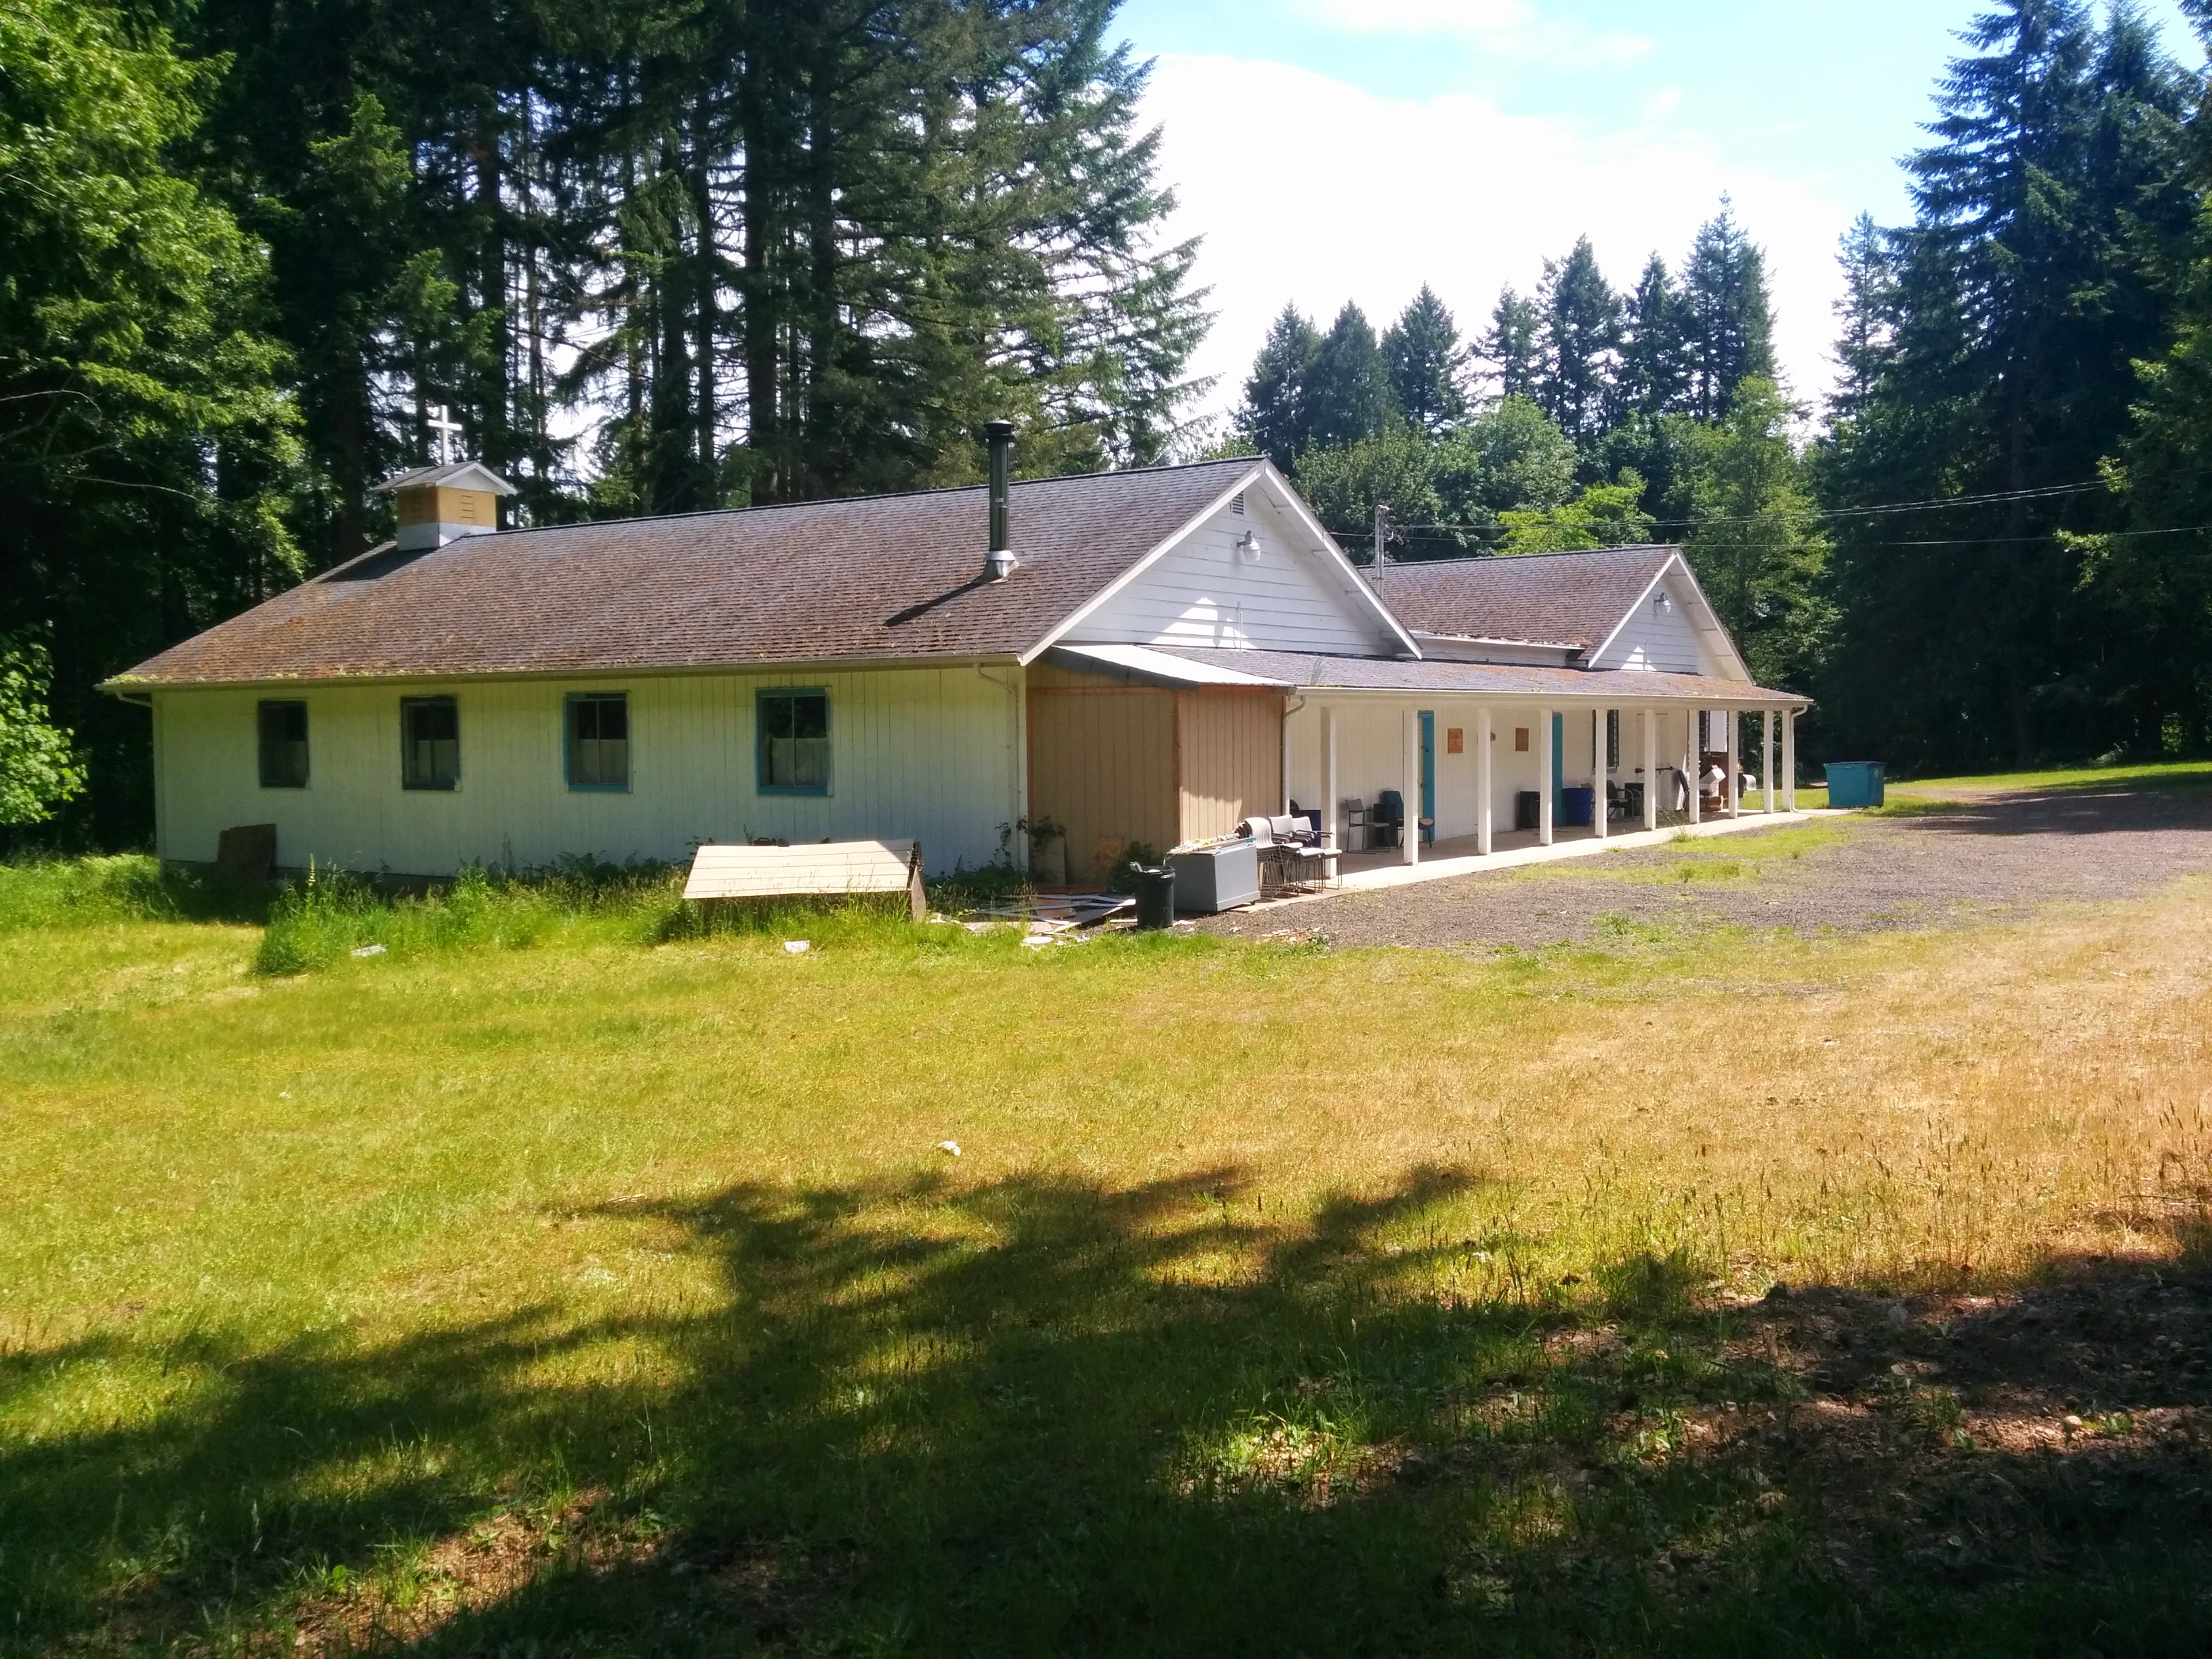 Mud Bay Indian Shaker Church, 2015